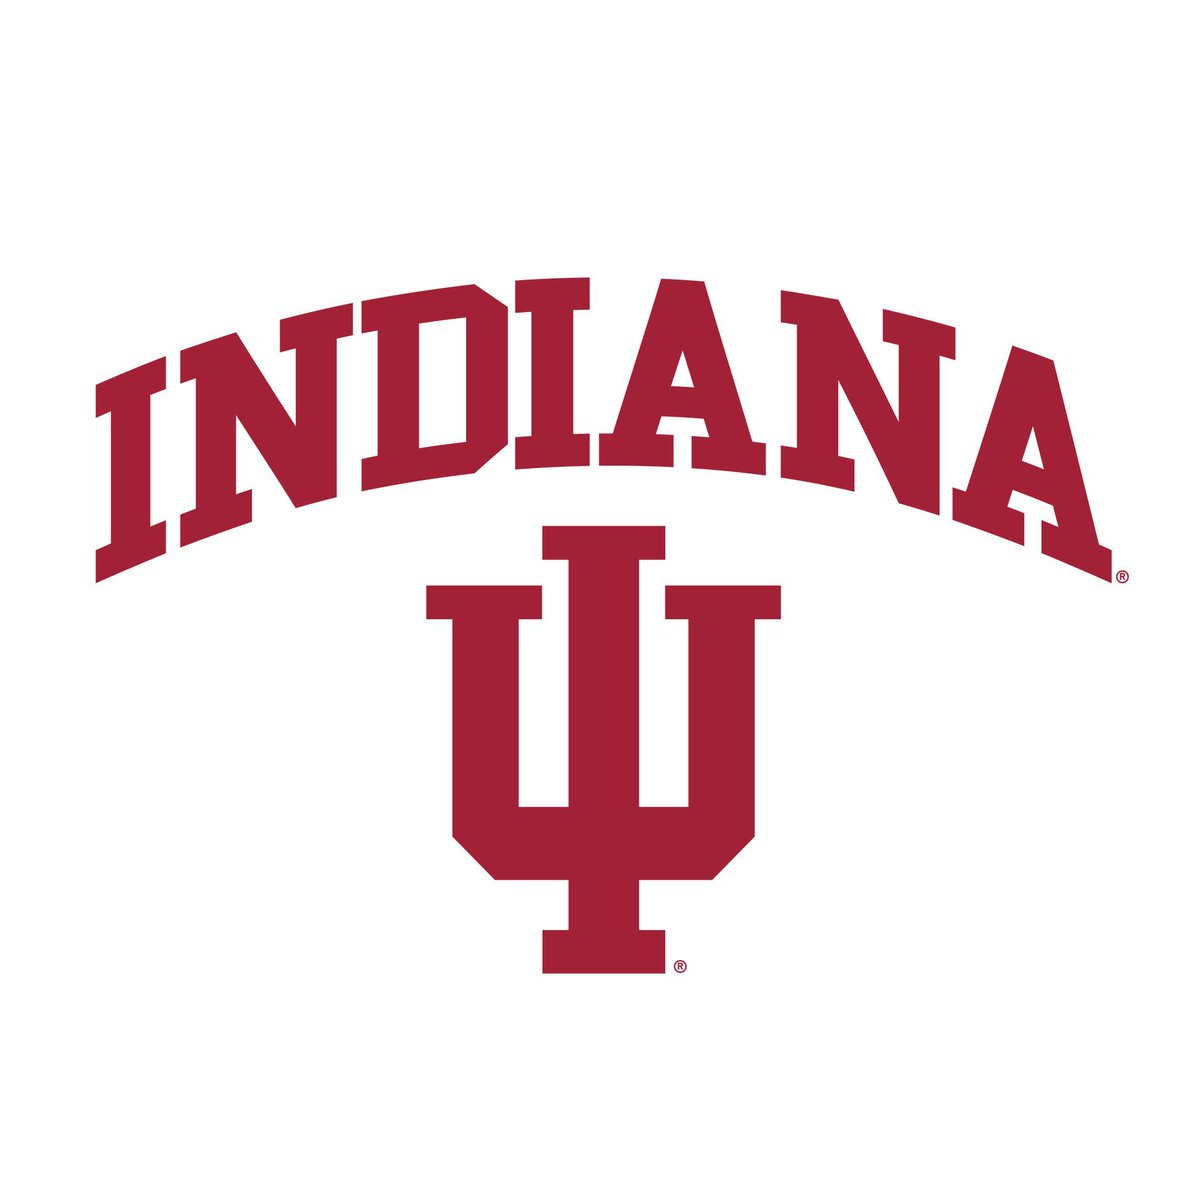 After a great talk with @OLCoachHiller I'm extremely blessed and excited to announce I have received an offer from Indiana university. GO HOOSIERS❤️🤍 https://t.co/BcPswyucFG